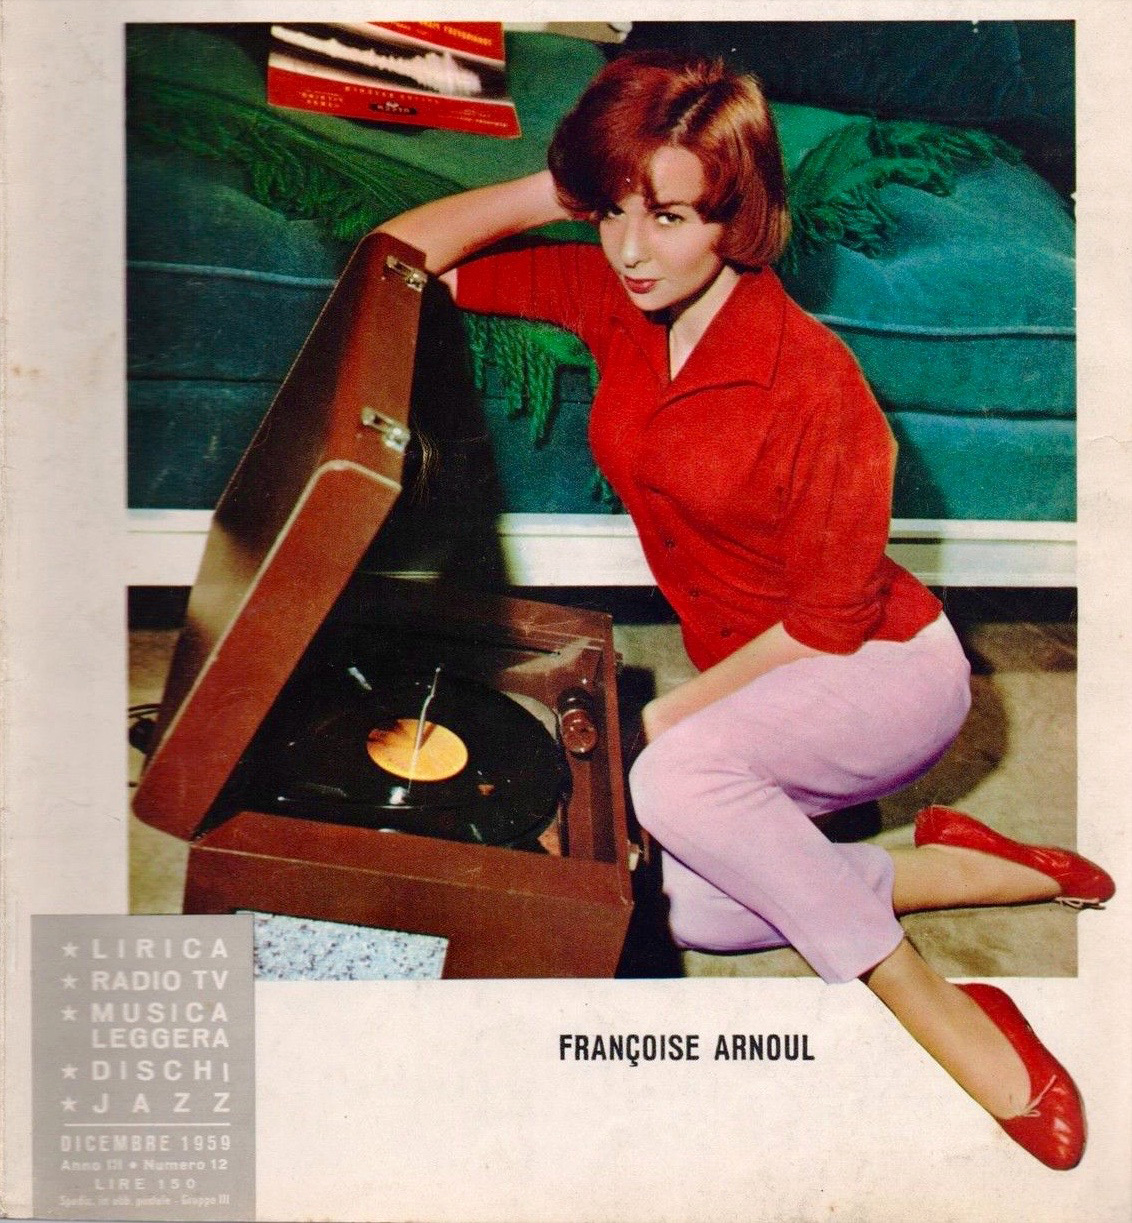 vintage-ladies-and-records-97